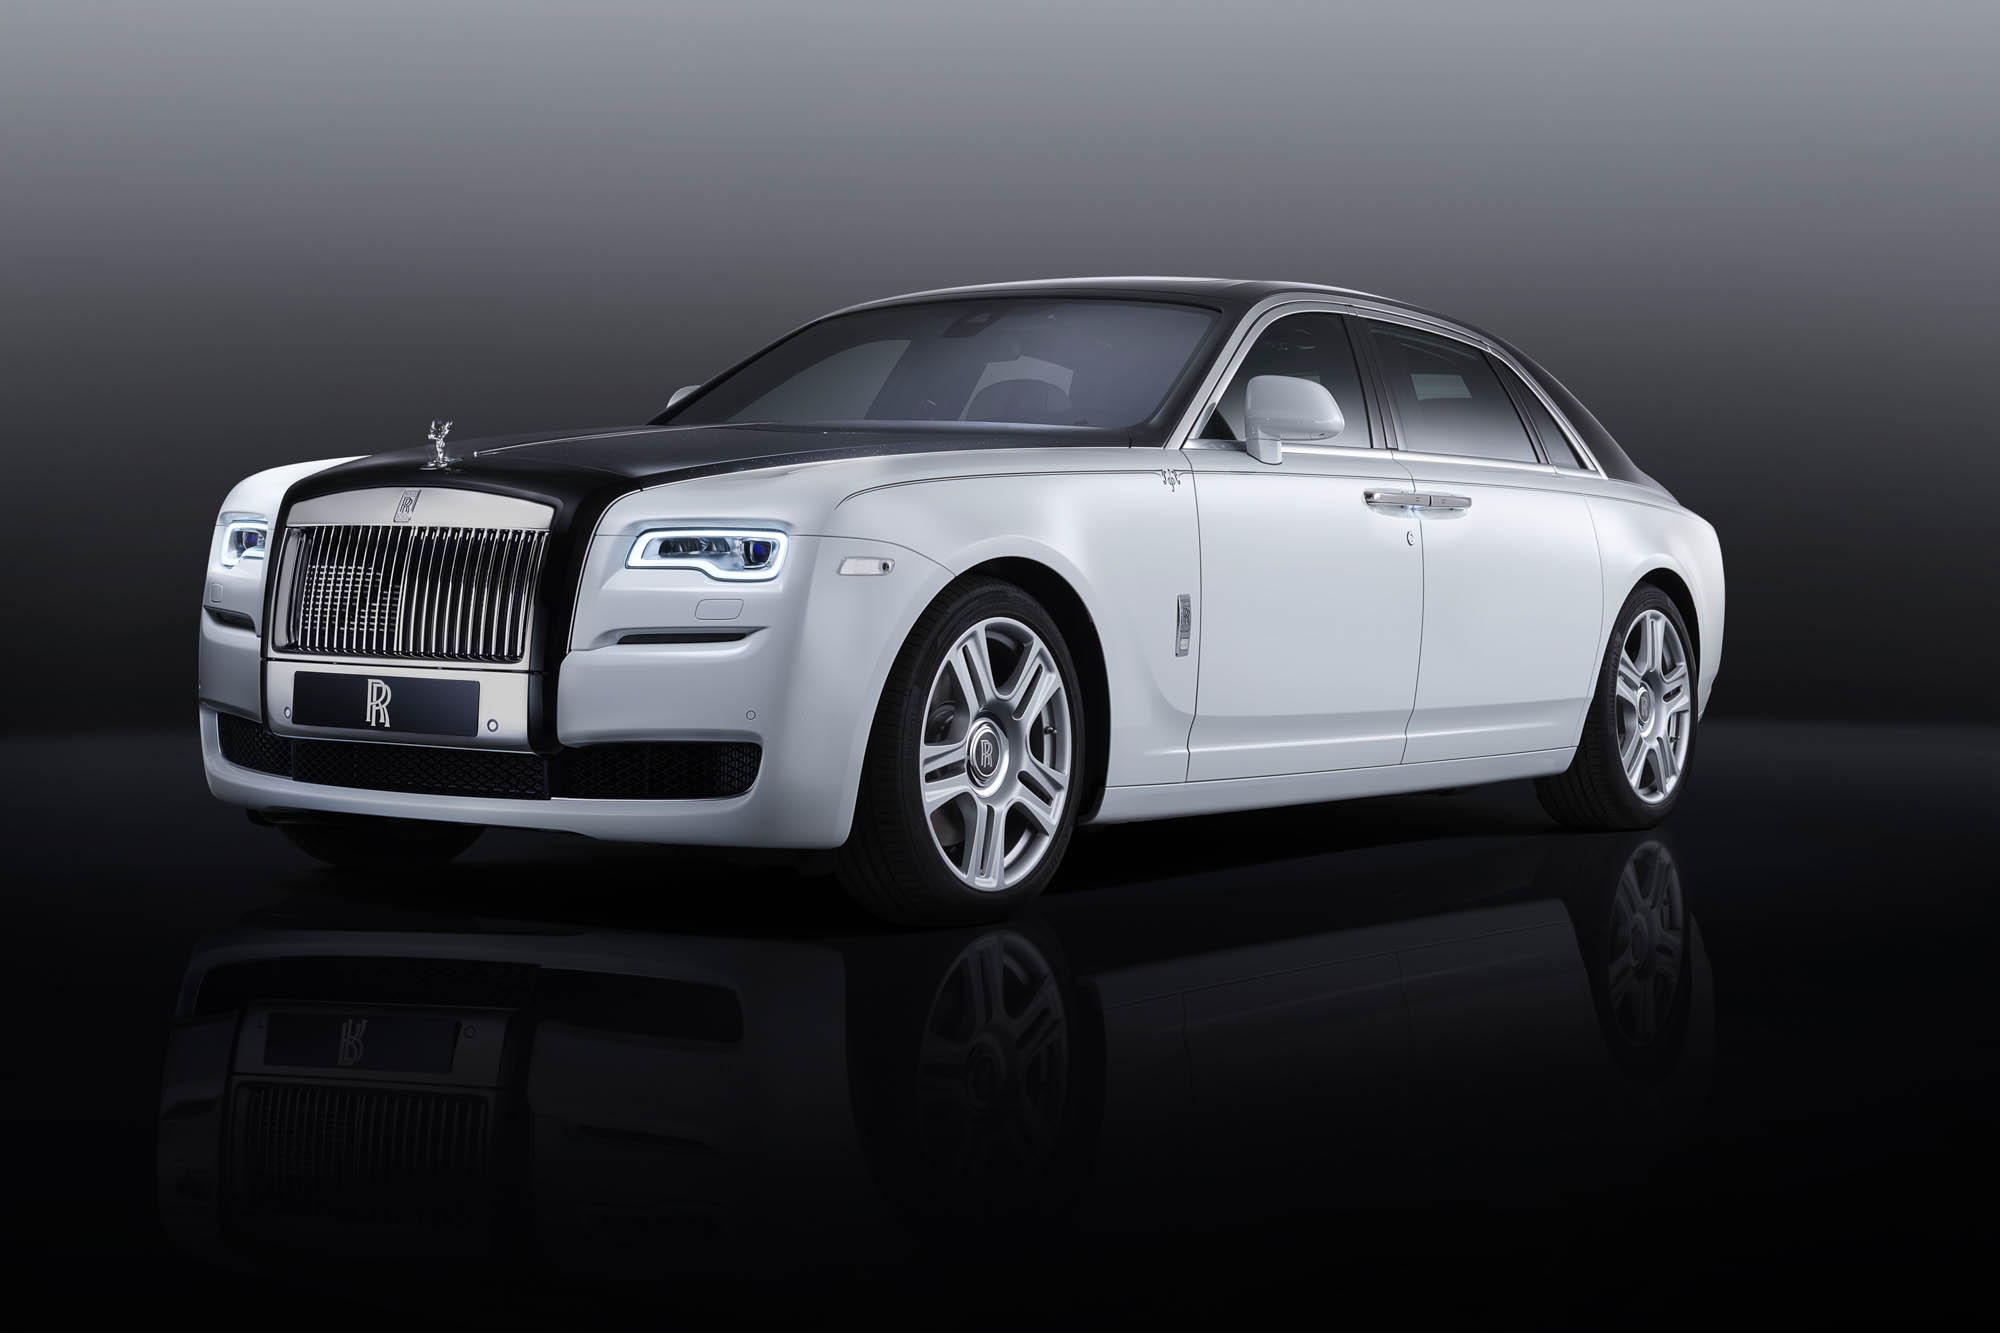 The Rolls-Royce Ghost Inspired by the Greats